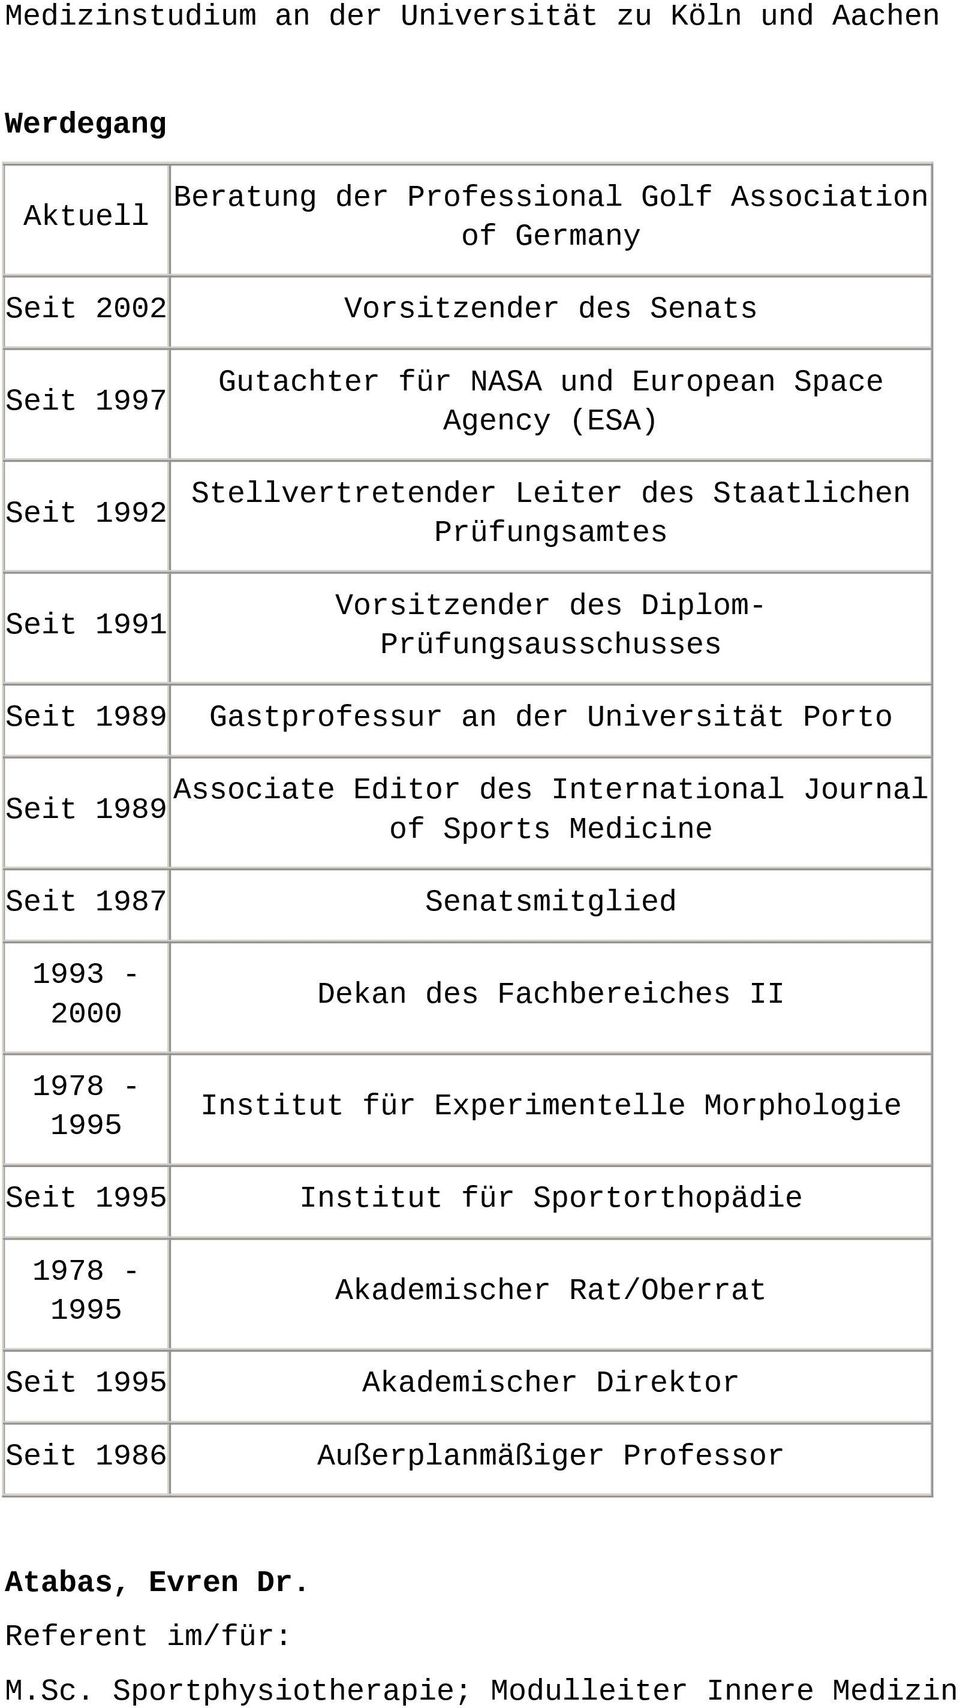 Associate Editor des International Journal 1989 of Sports Medicine 1987 1993-2000 1978-1995 1995 1978-1995 1995 1986 Senatsmitglied Dekan des Fachbereiches II Institut für